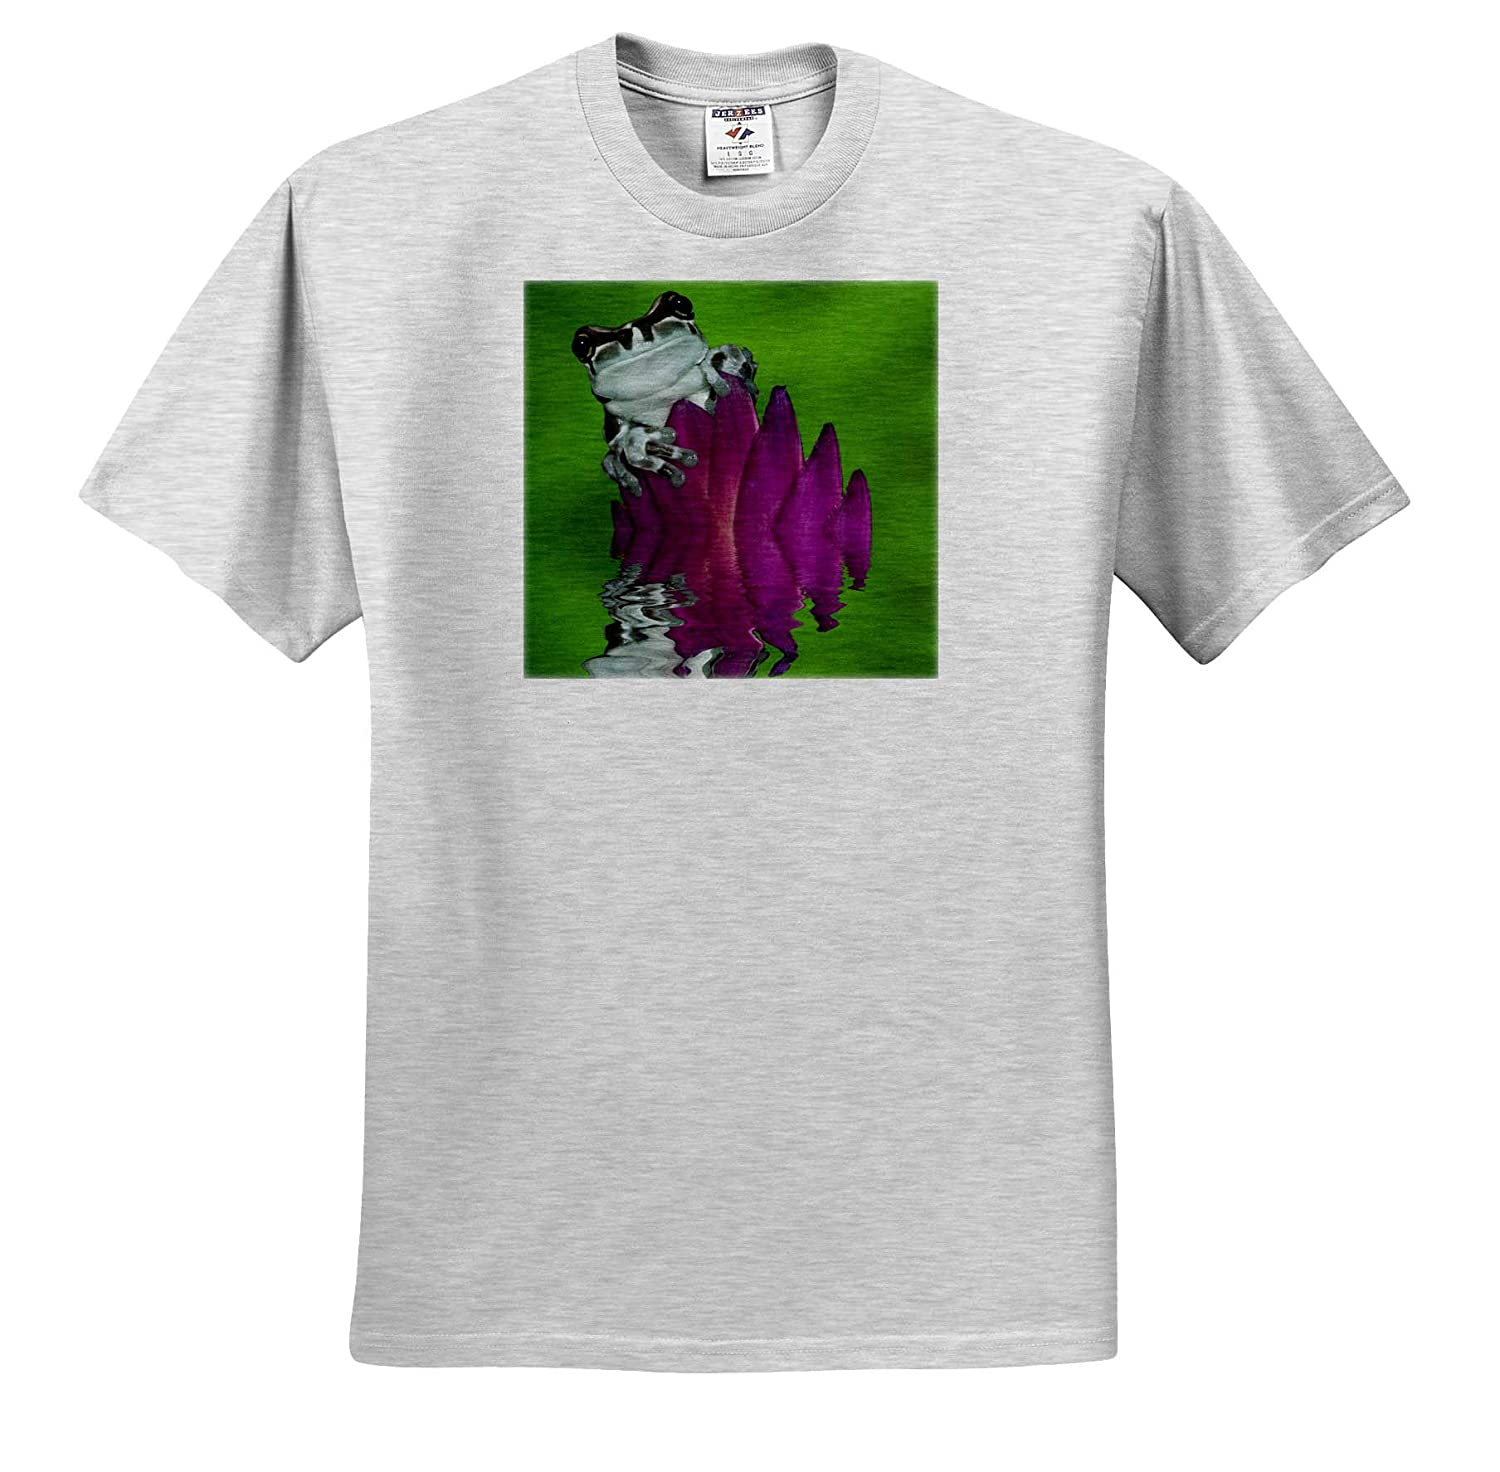 - Adult T-Shirt XL Frogs ts/_314399 Panama South America Milk Frog Reflects in Water 3dRose Danita Delimont